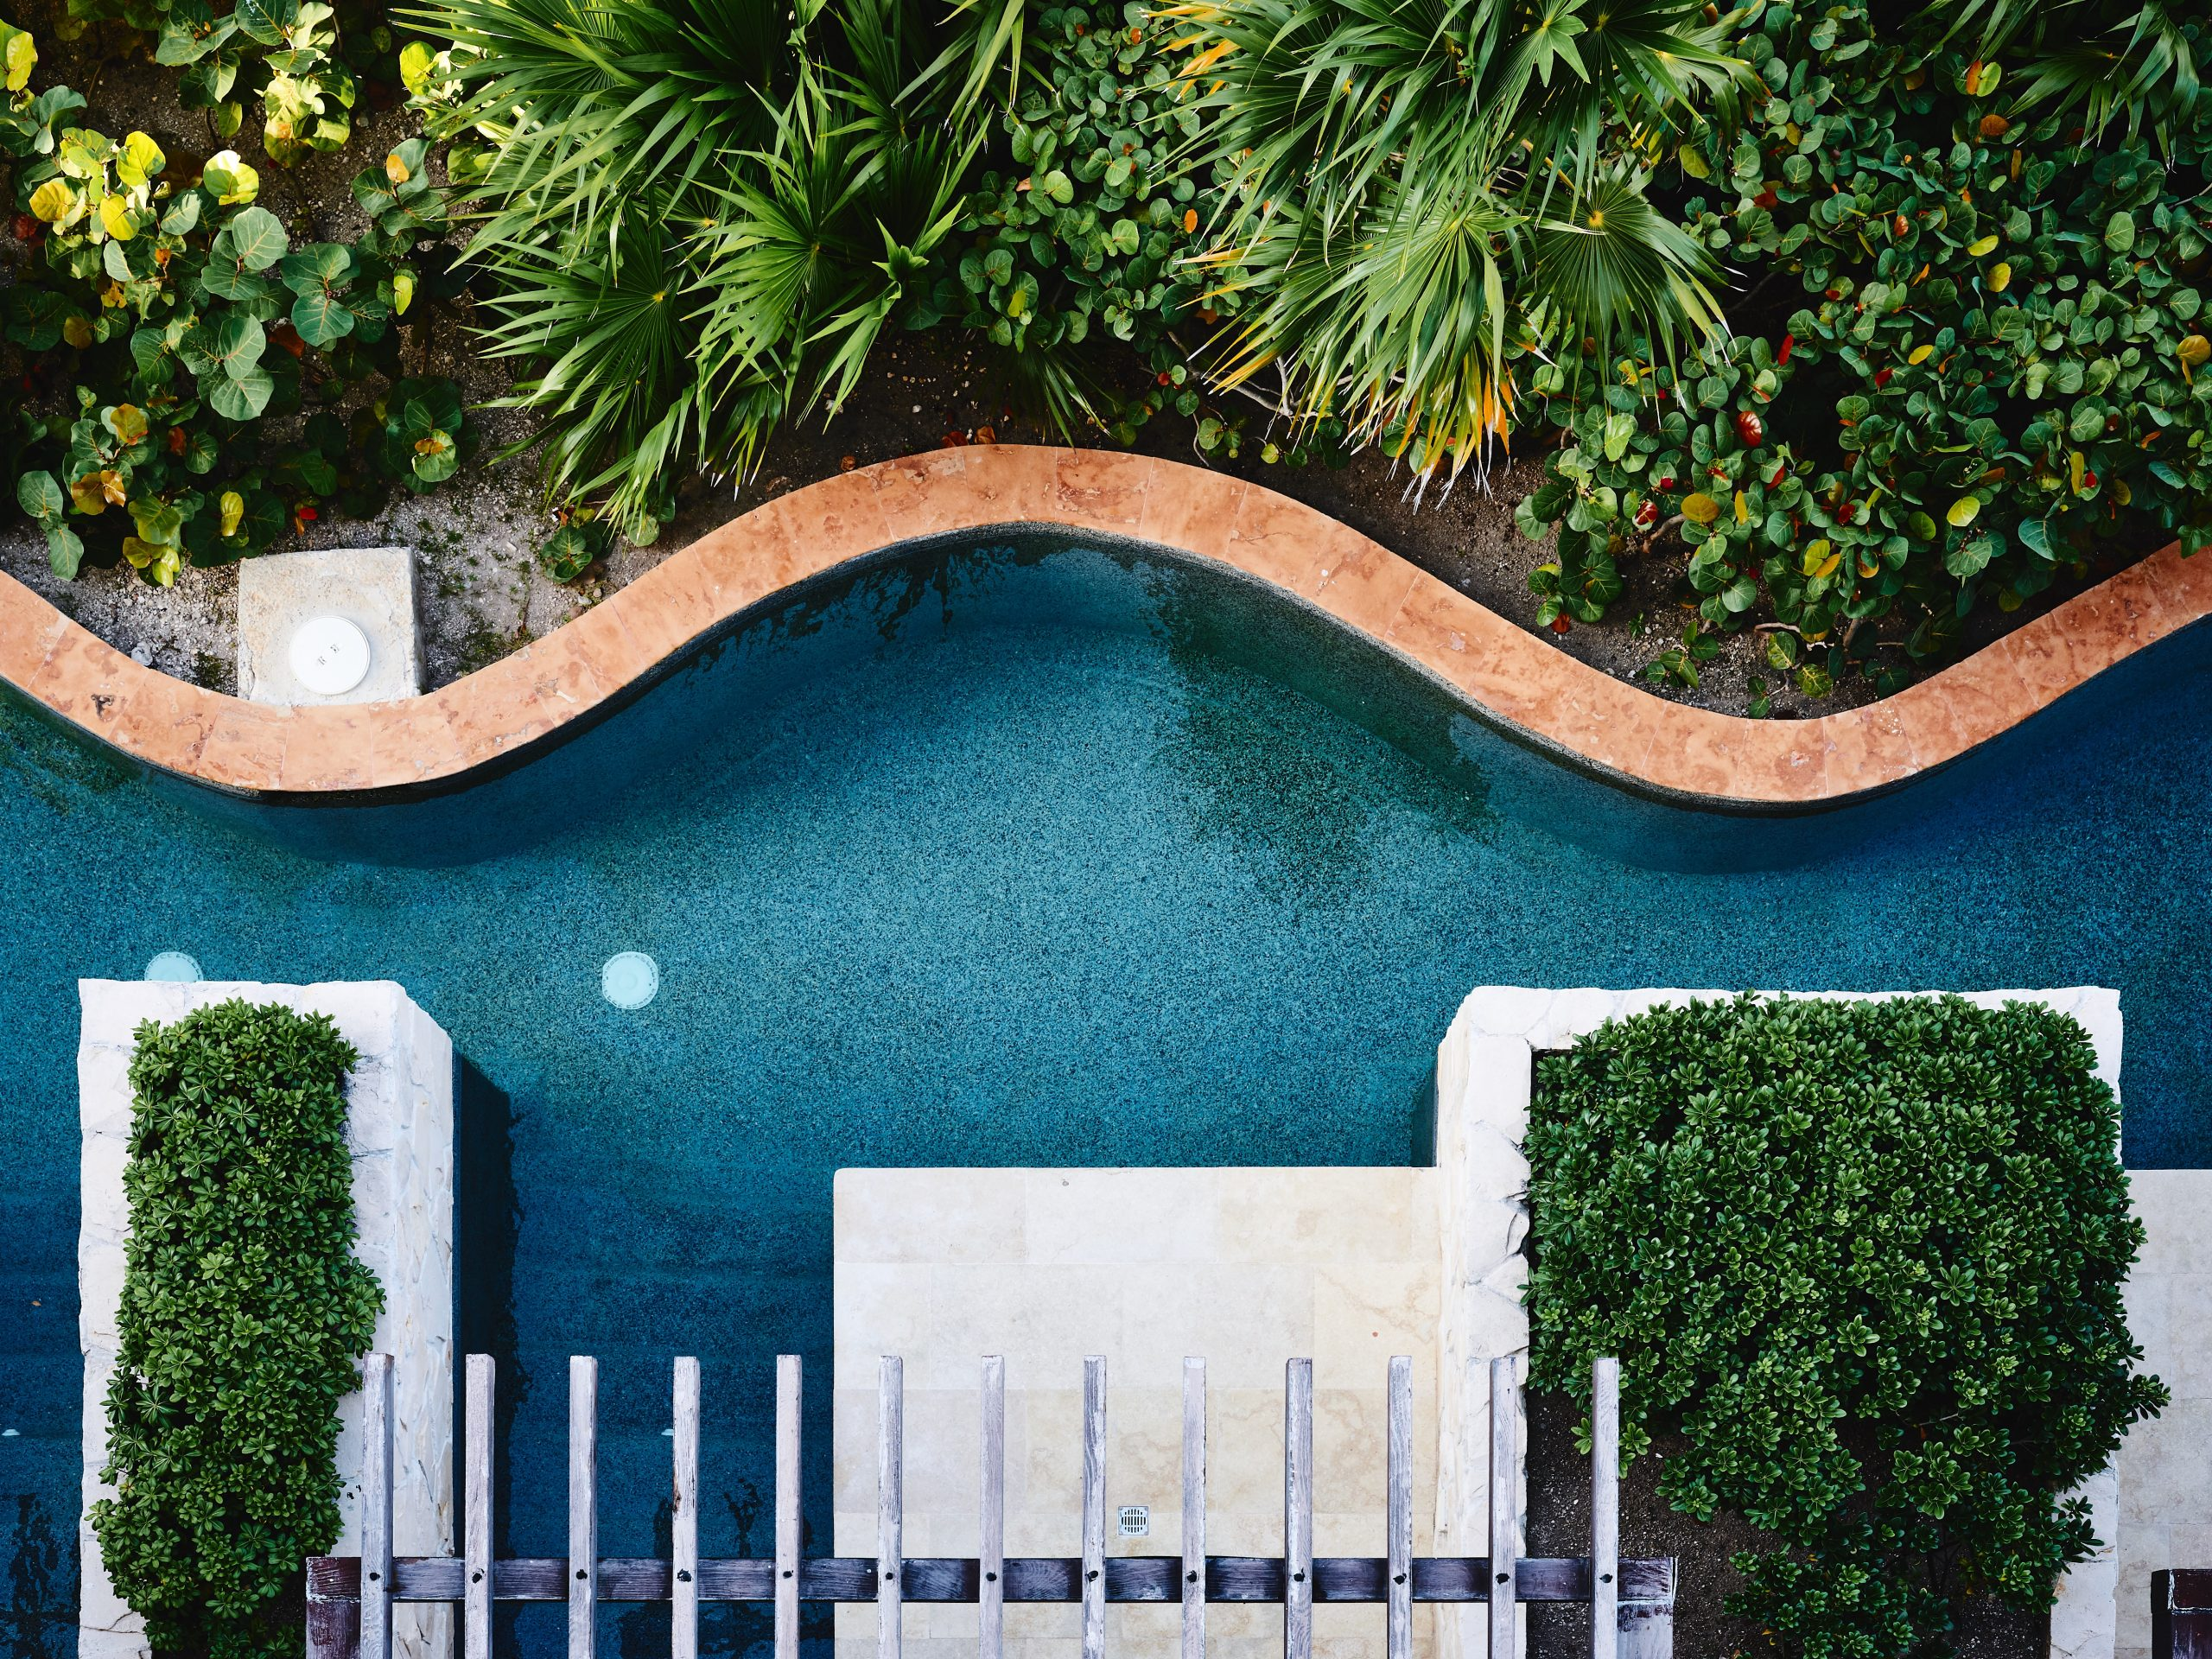 Why Should You Hire a Pool Cleaning Service for Your Pool?